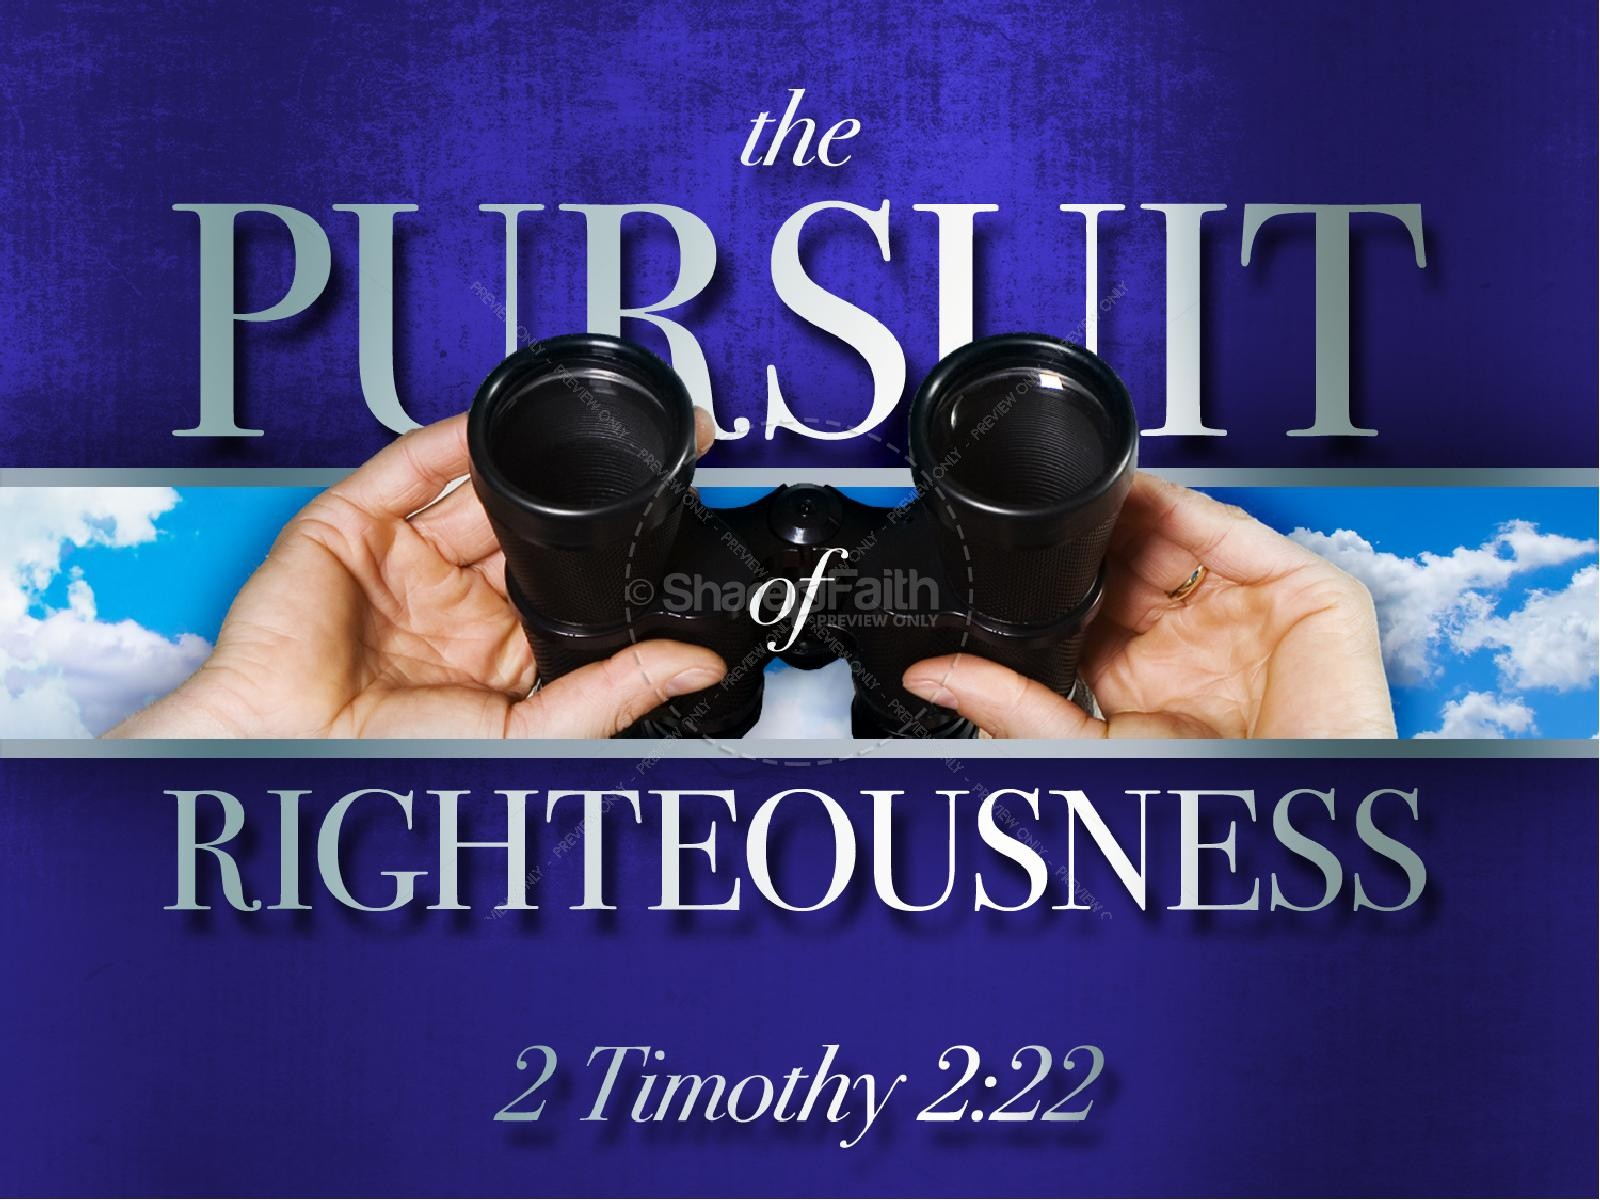 the pursuit of righteousness christian powerpoint